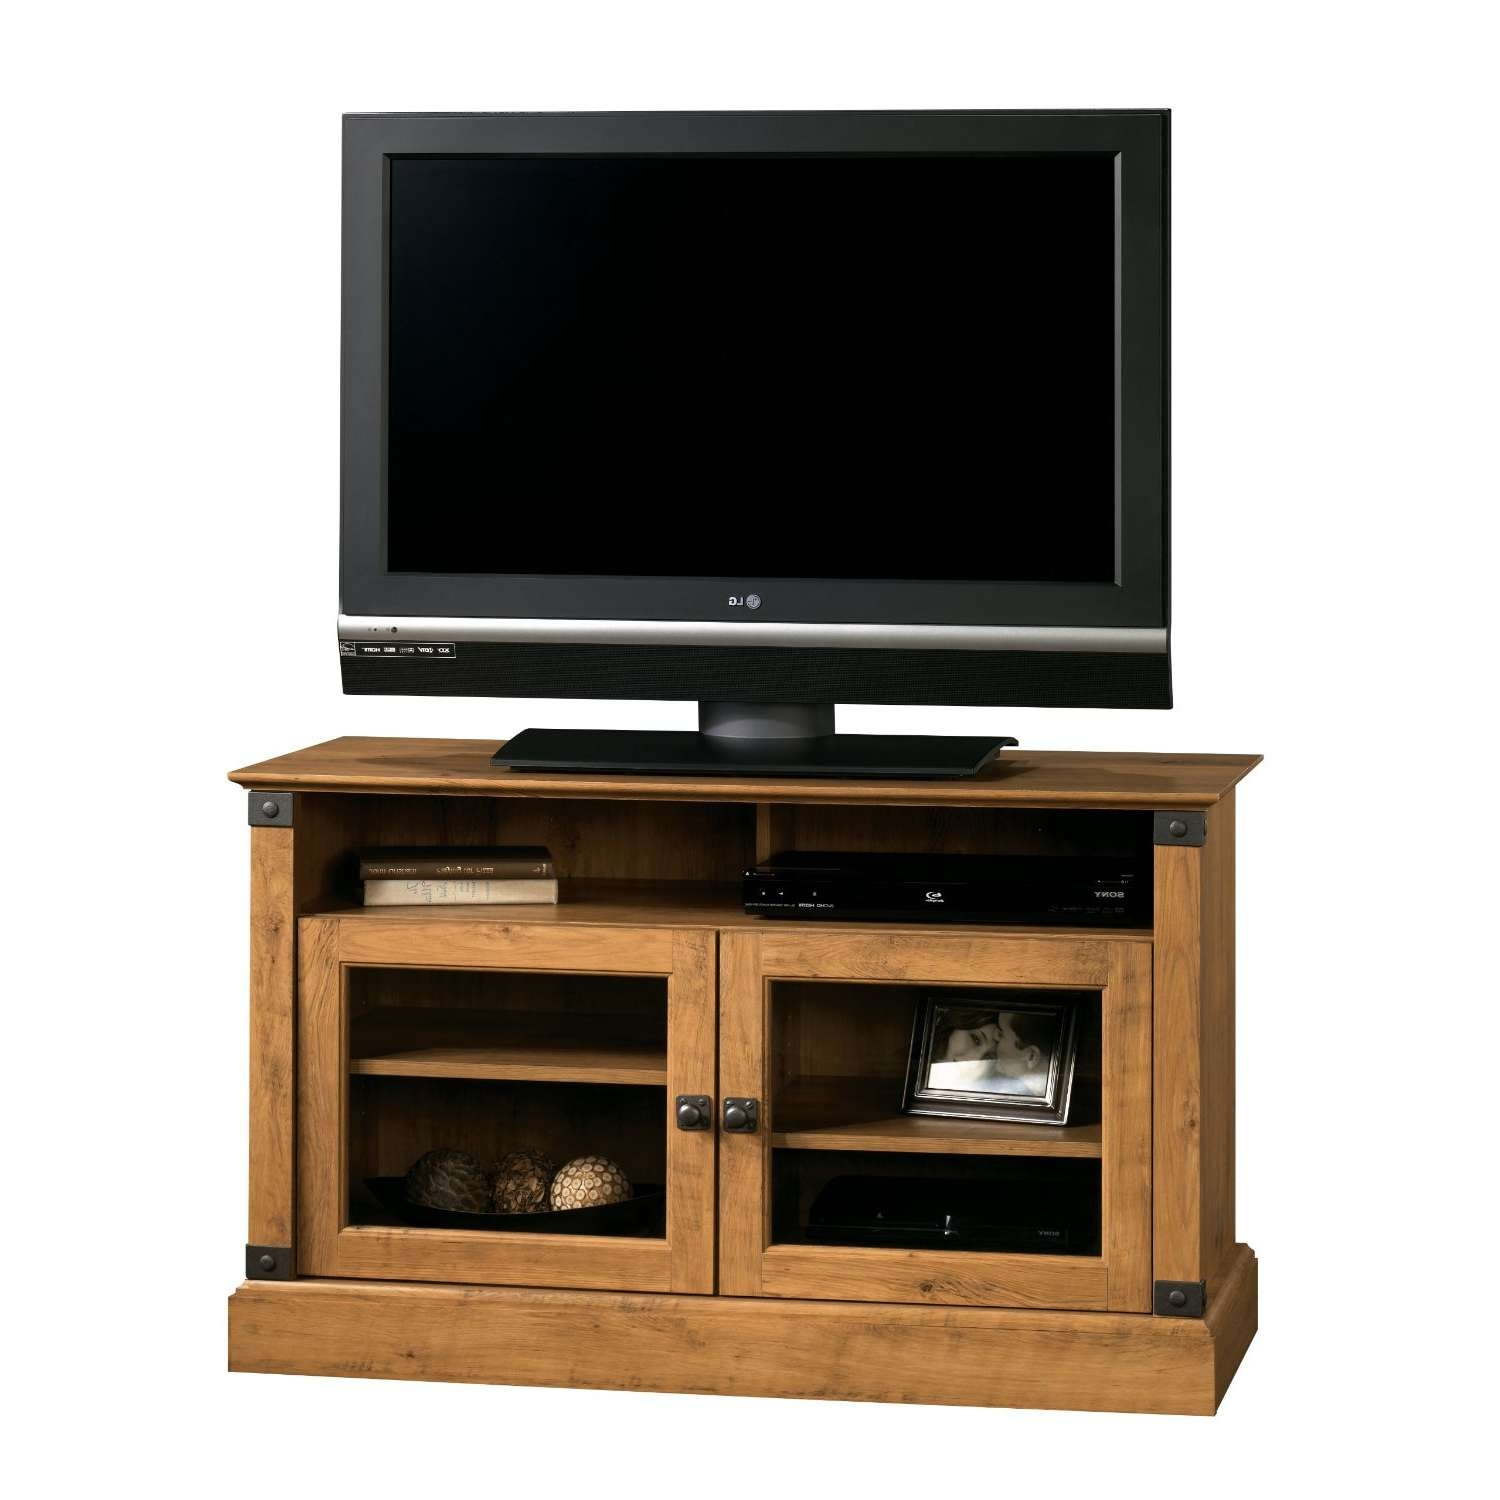 Furniture: Single Cube Reclaimed Wood Tv Stand With Storage Base Inside Single Tv Stands (View 2 of 15)